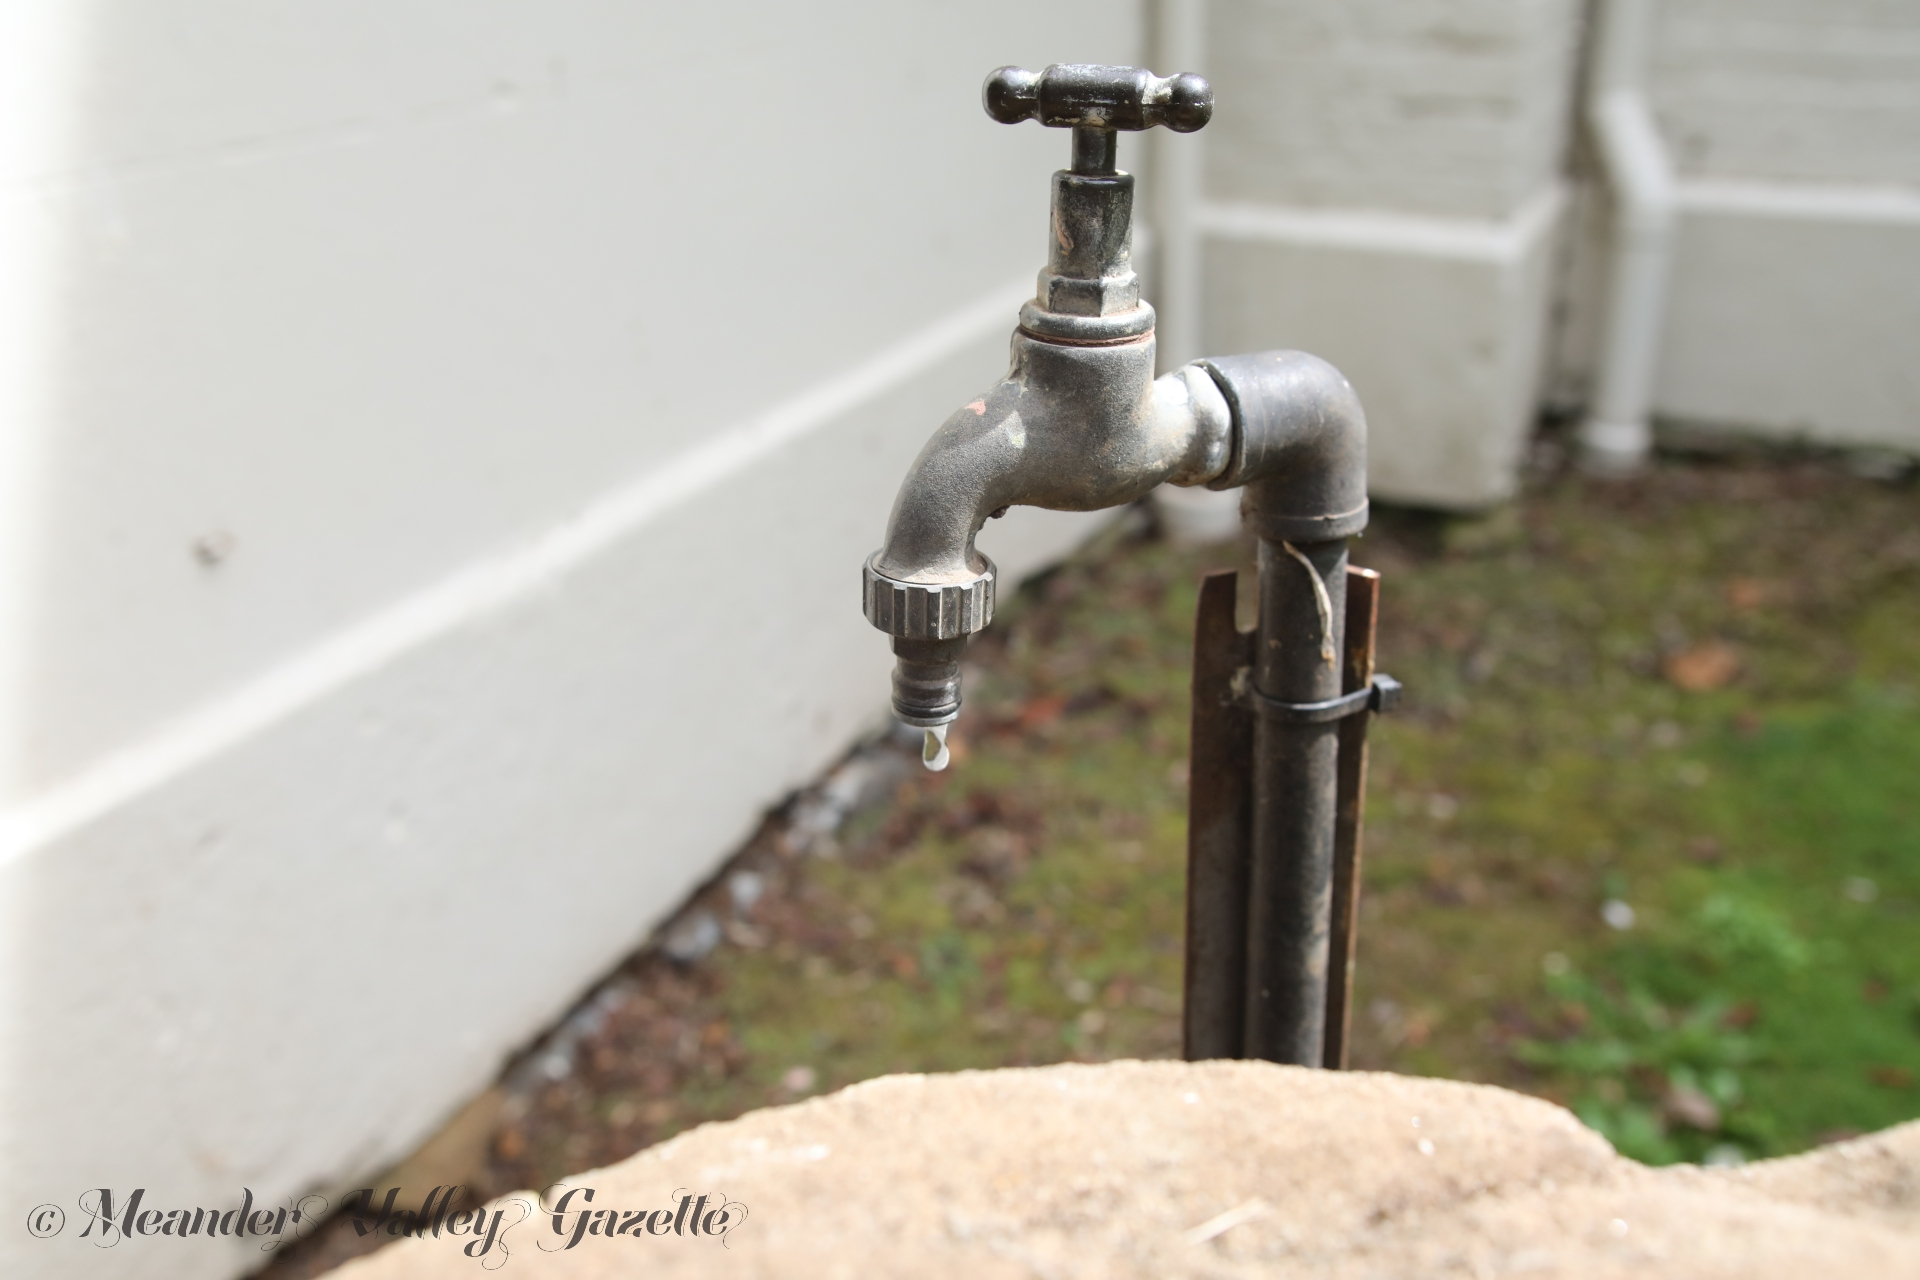 A slow dripping tap can waste up to five litres of water per hour.